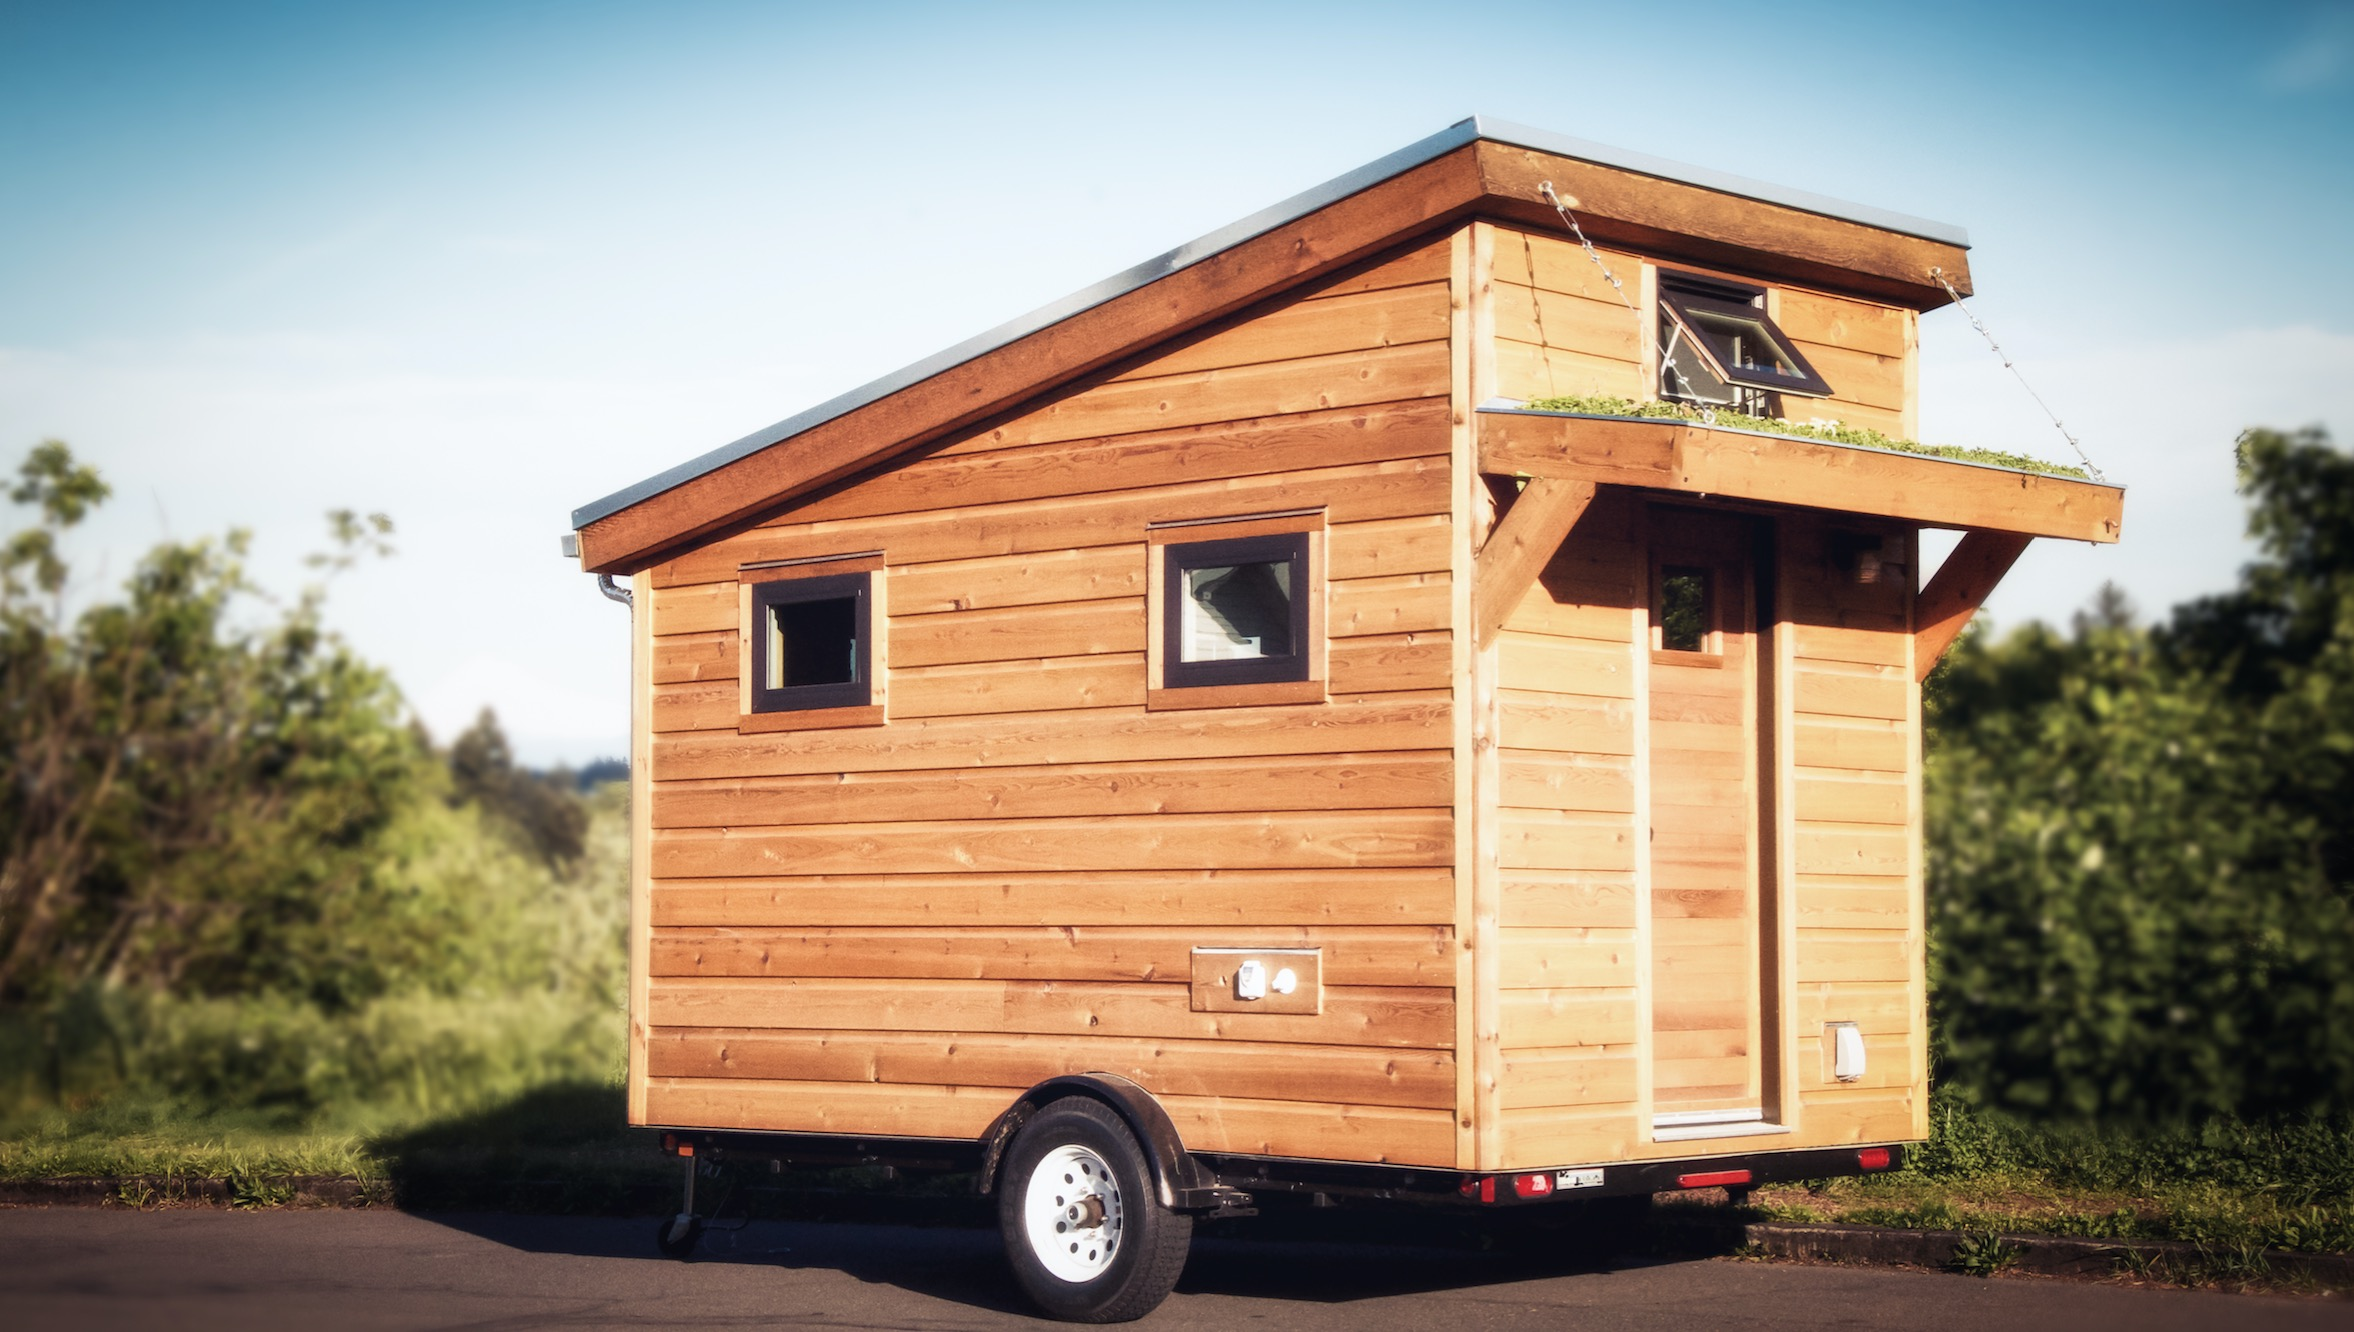 Salsa Box tiny house plans